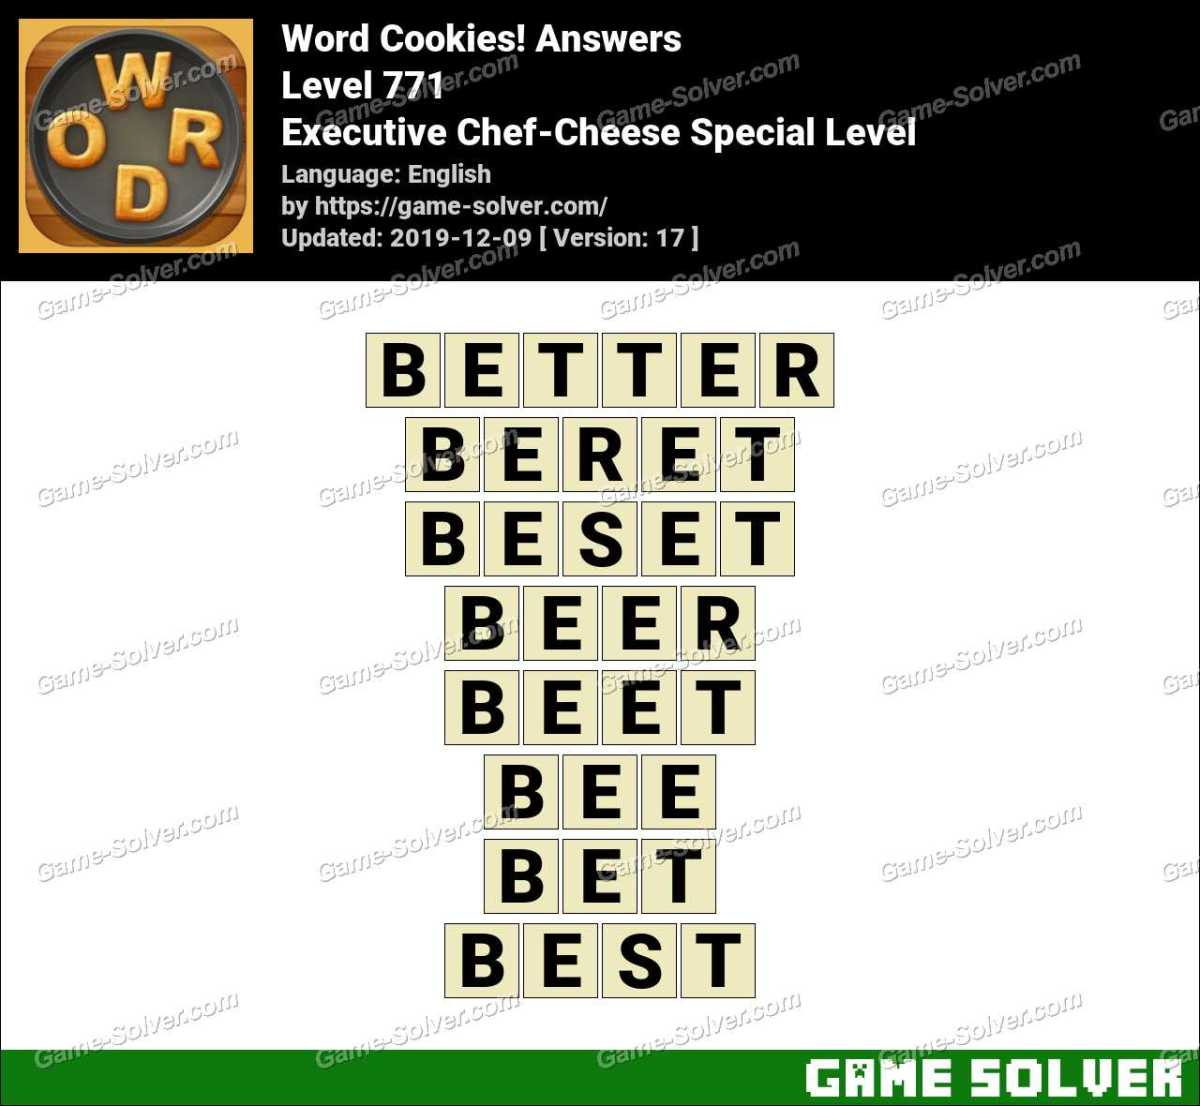 Word Cookies Executive Chef-Cheese Special Level Answers